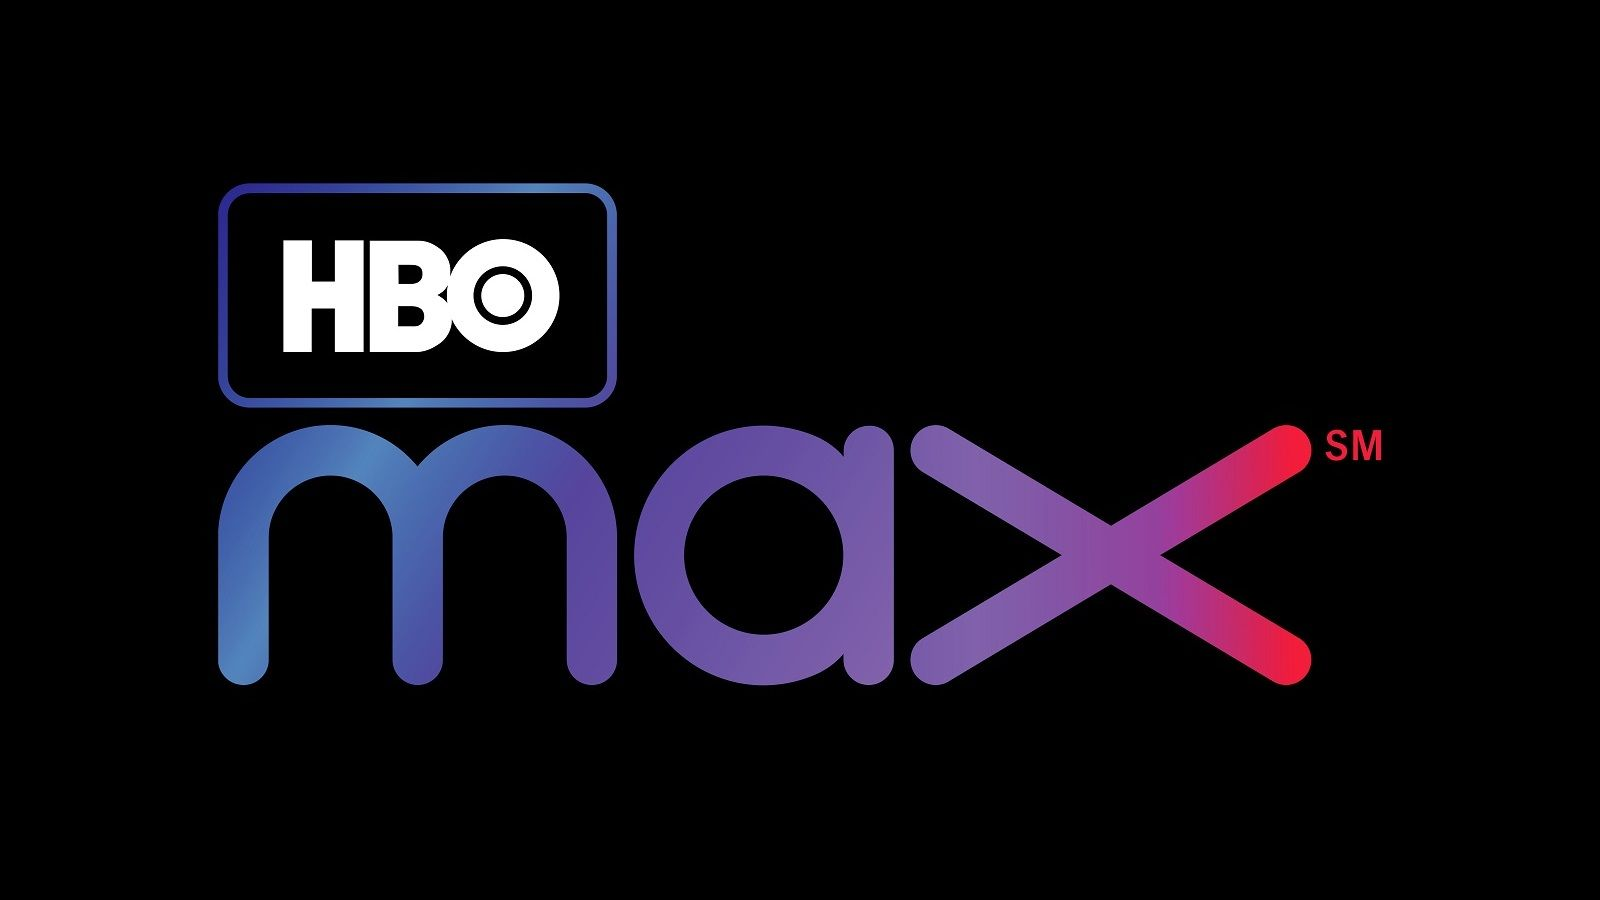 What's the Difference Between HBO Go, HBO Now and HBO Max?